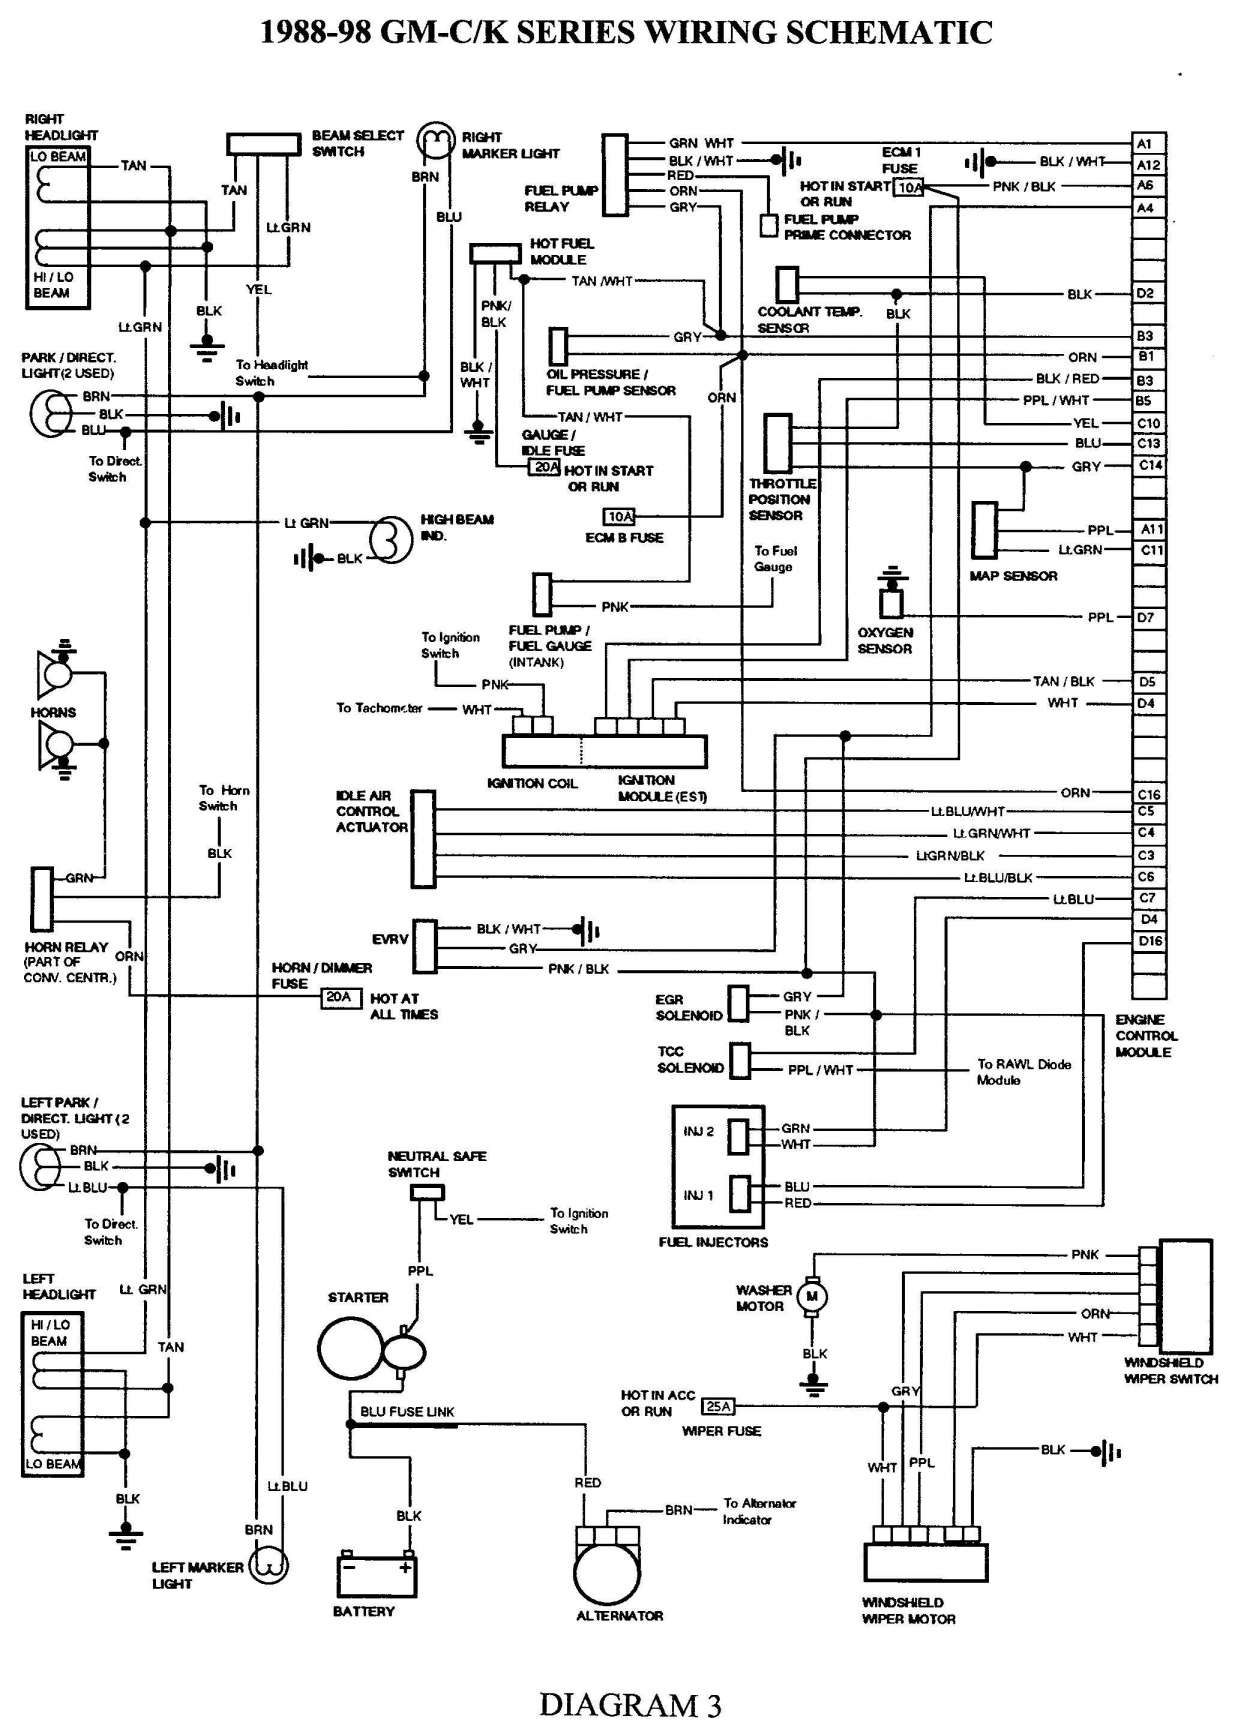 15+ 89 chevy truck wiring diagram - truck diagram - wiringg.net | electrical  diagram, electrical wiring diagram, chevy 1500  pinterest